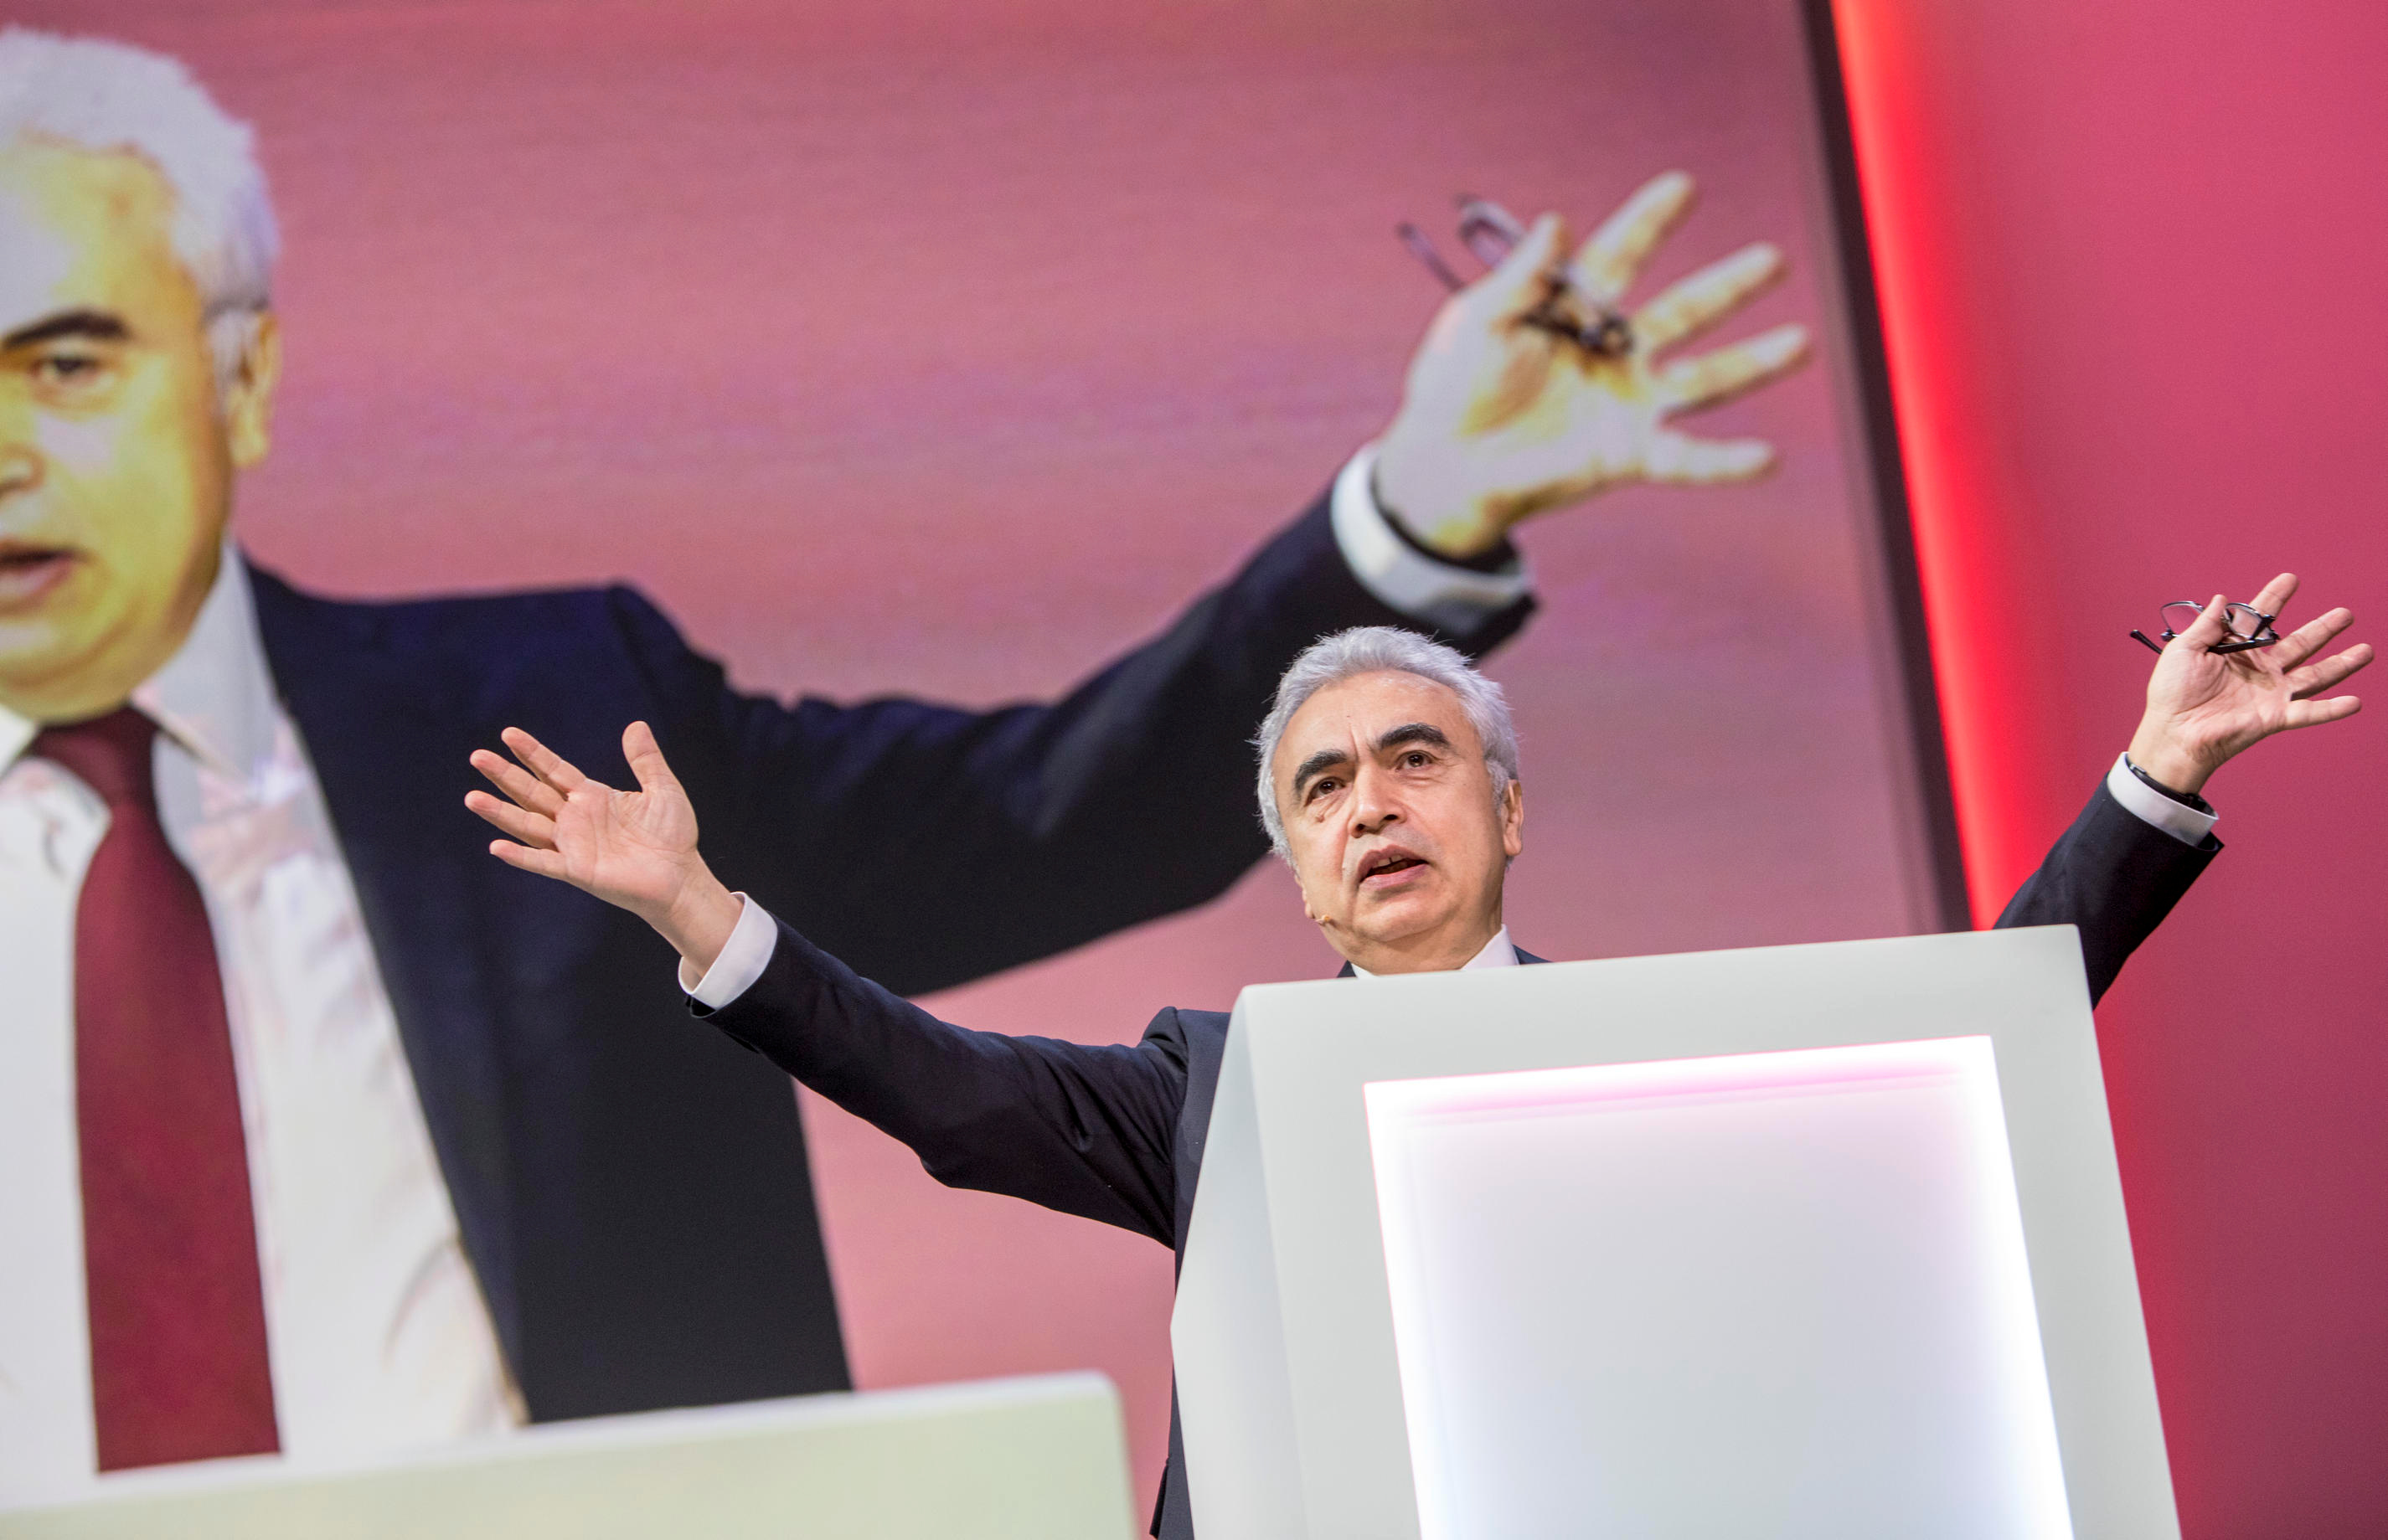 Fatih Birol, Executive Director of the International Energy Agency, speaks at Equinor's Autumn conference in Oslo, Norway November 26, 2019. Ole Berg-Rusten/NTB Scanpix/via REUTERS   ATTENTION EDITORS - THIS IMAGE WAS PROVIDED BY A THIRD PARTY. NORWAY OUT. NO COMMERCIAL OR EDITORIAL SALES IN NORWAY. - RC22JD96M0G2